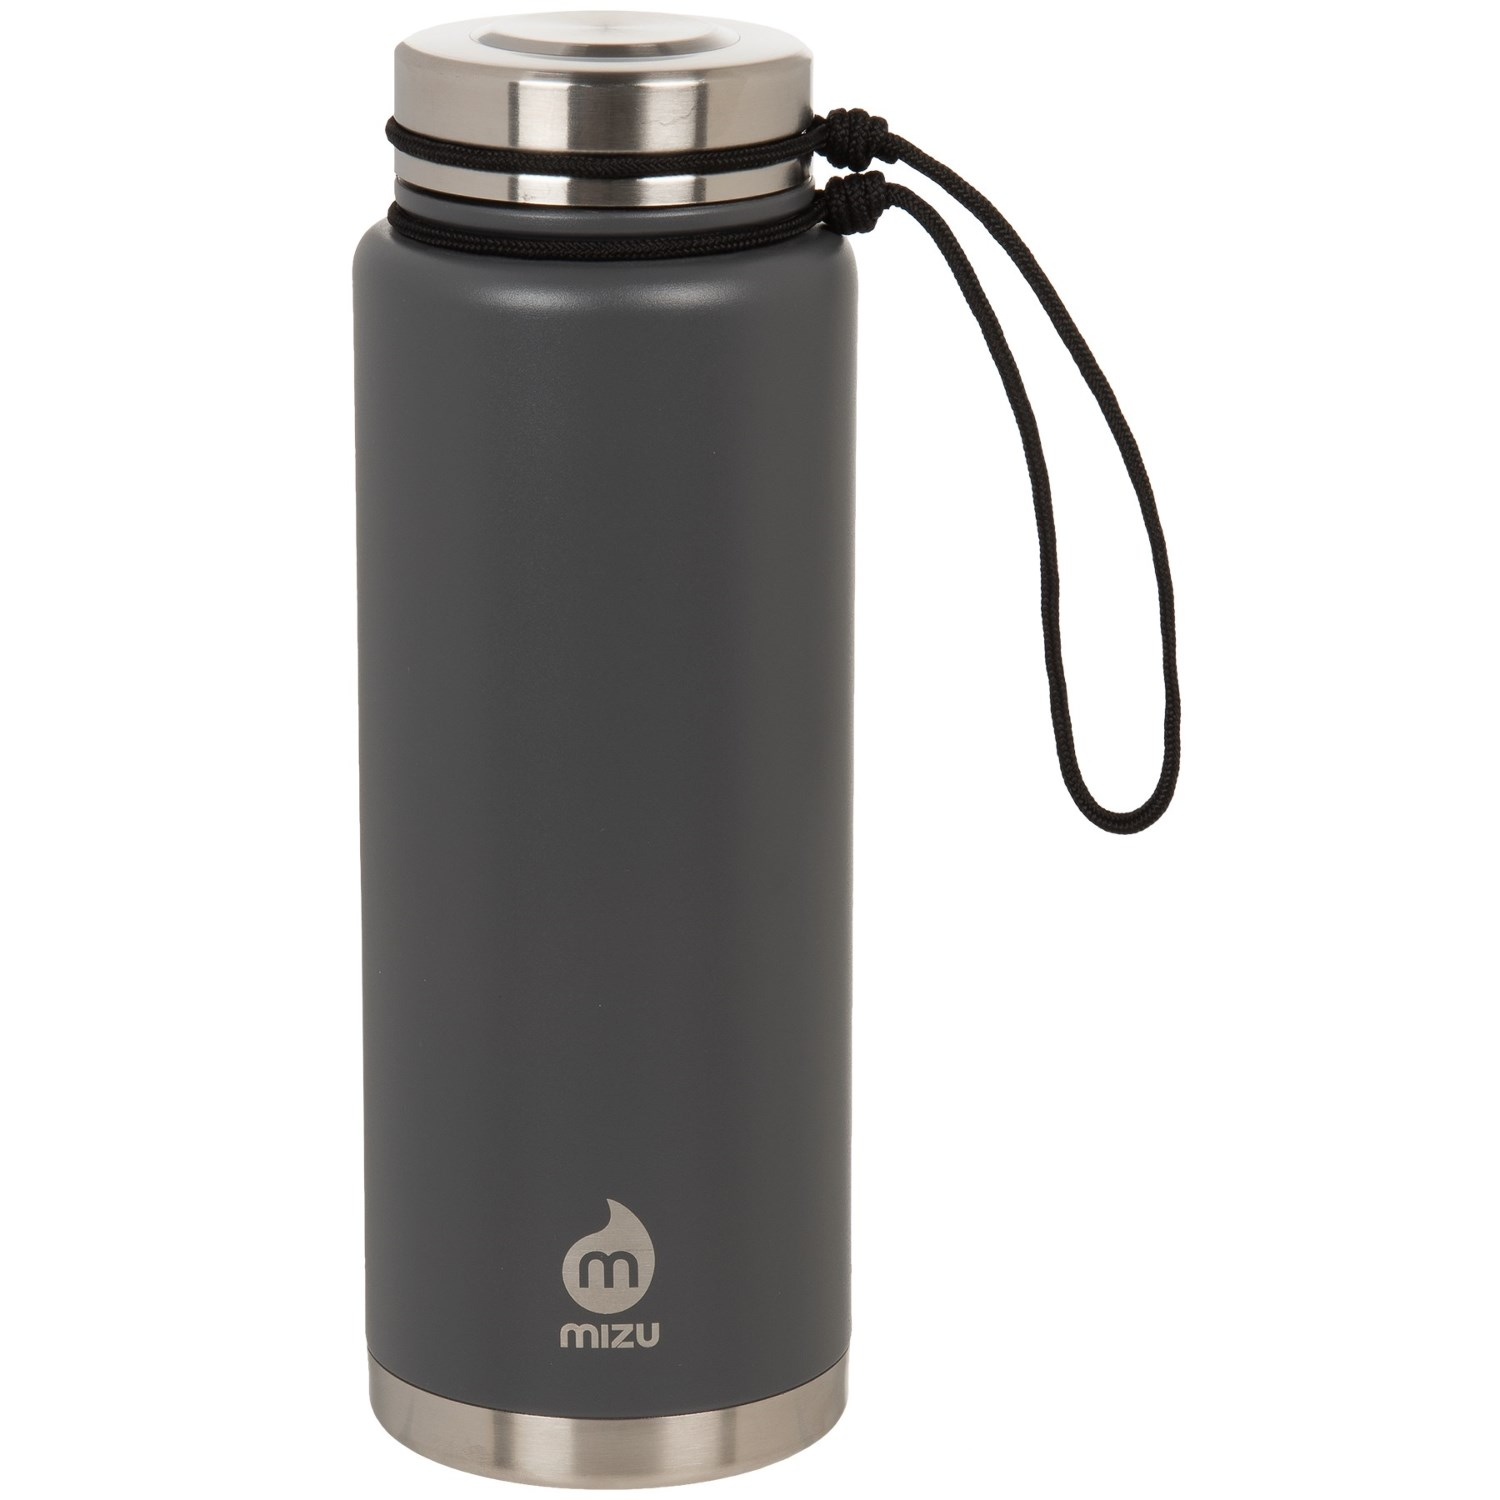 72d75c28eb ... Mizu V12 Soft Touch Water Bottle BPA Free Stainless Steel 36 fl